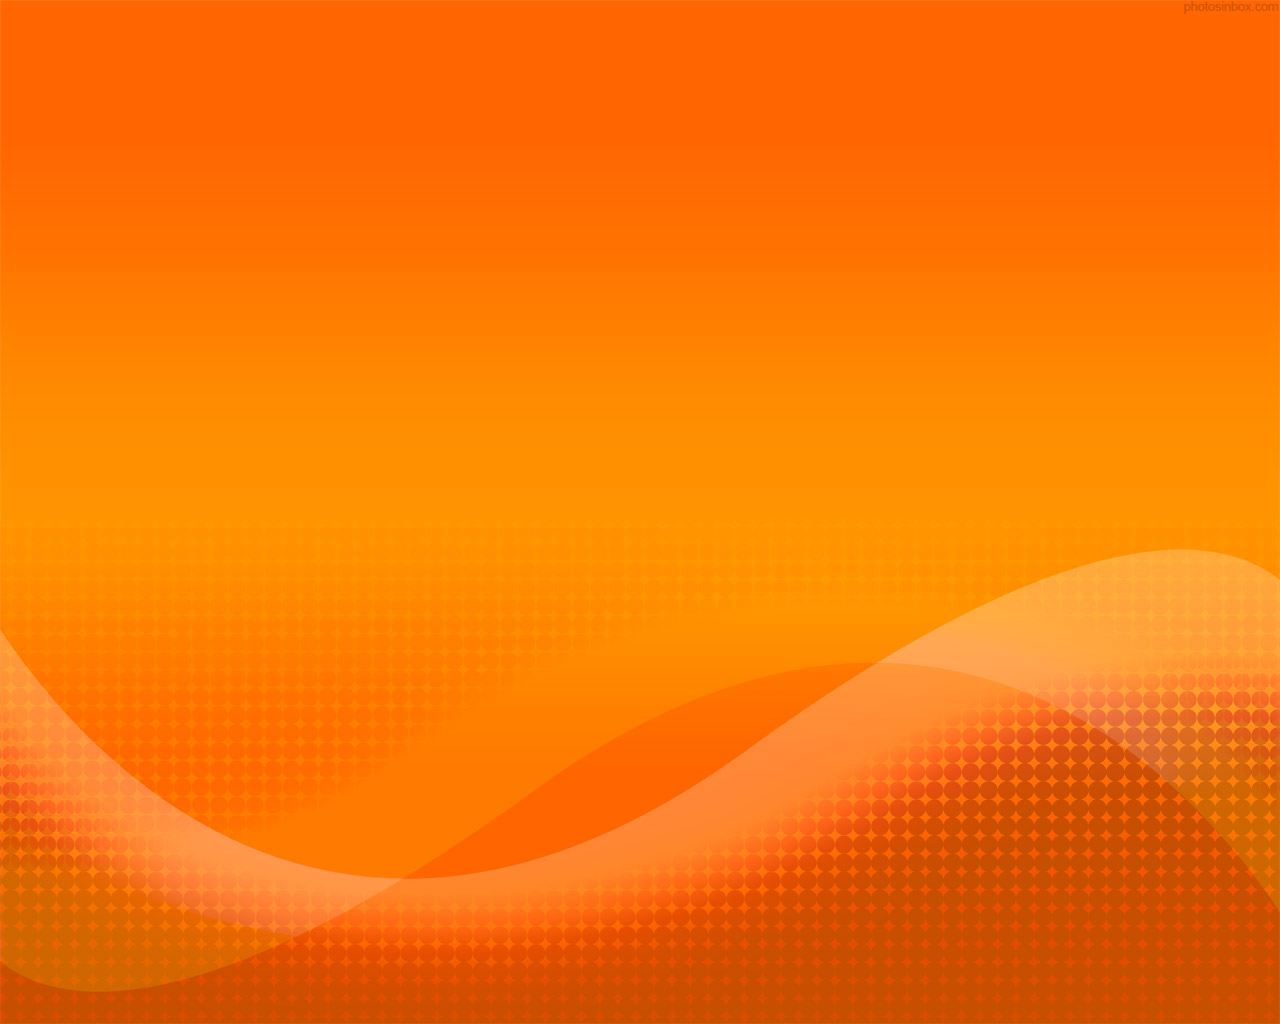 Orange Background Design Related Keywords amp Suggestions 1280x1024